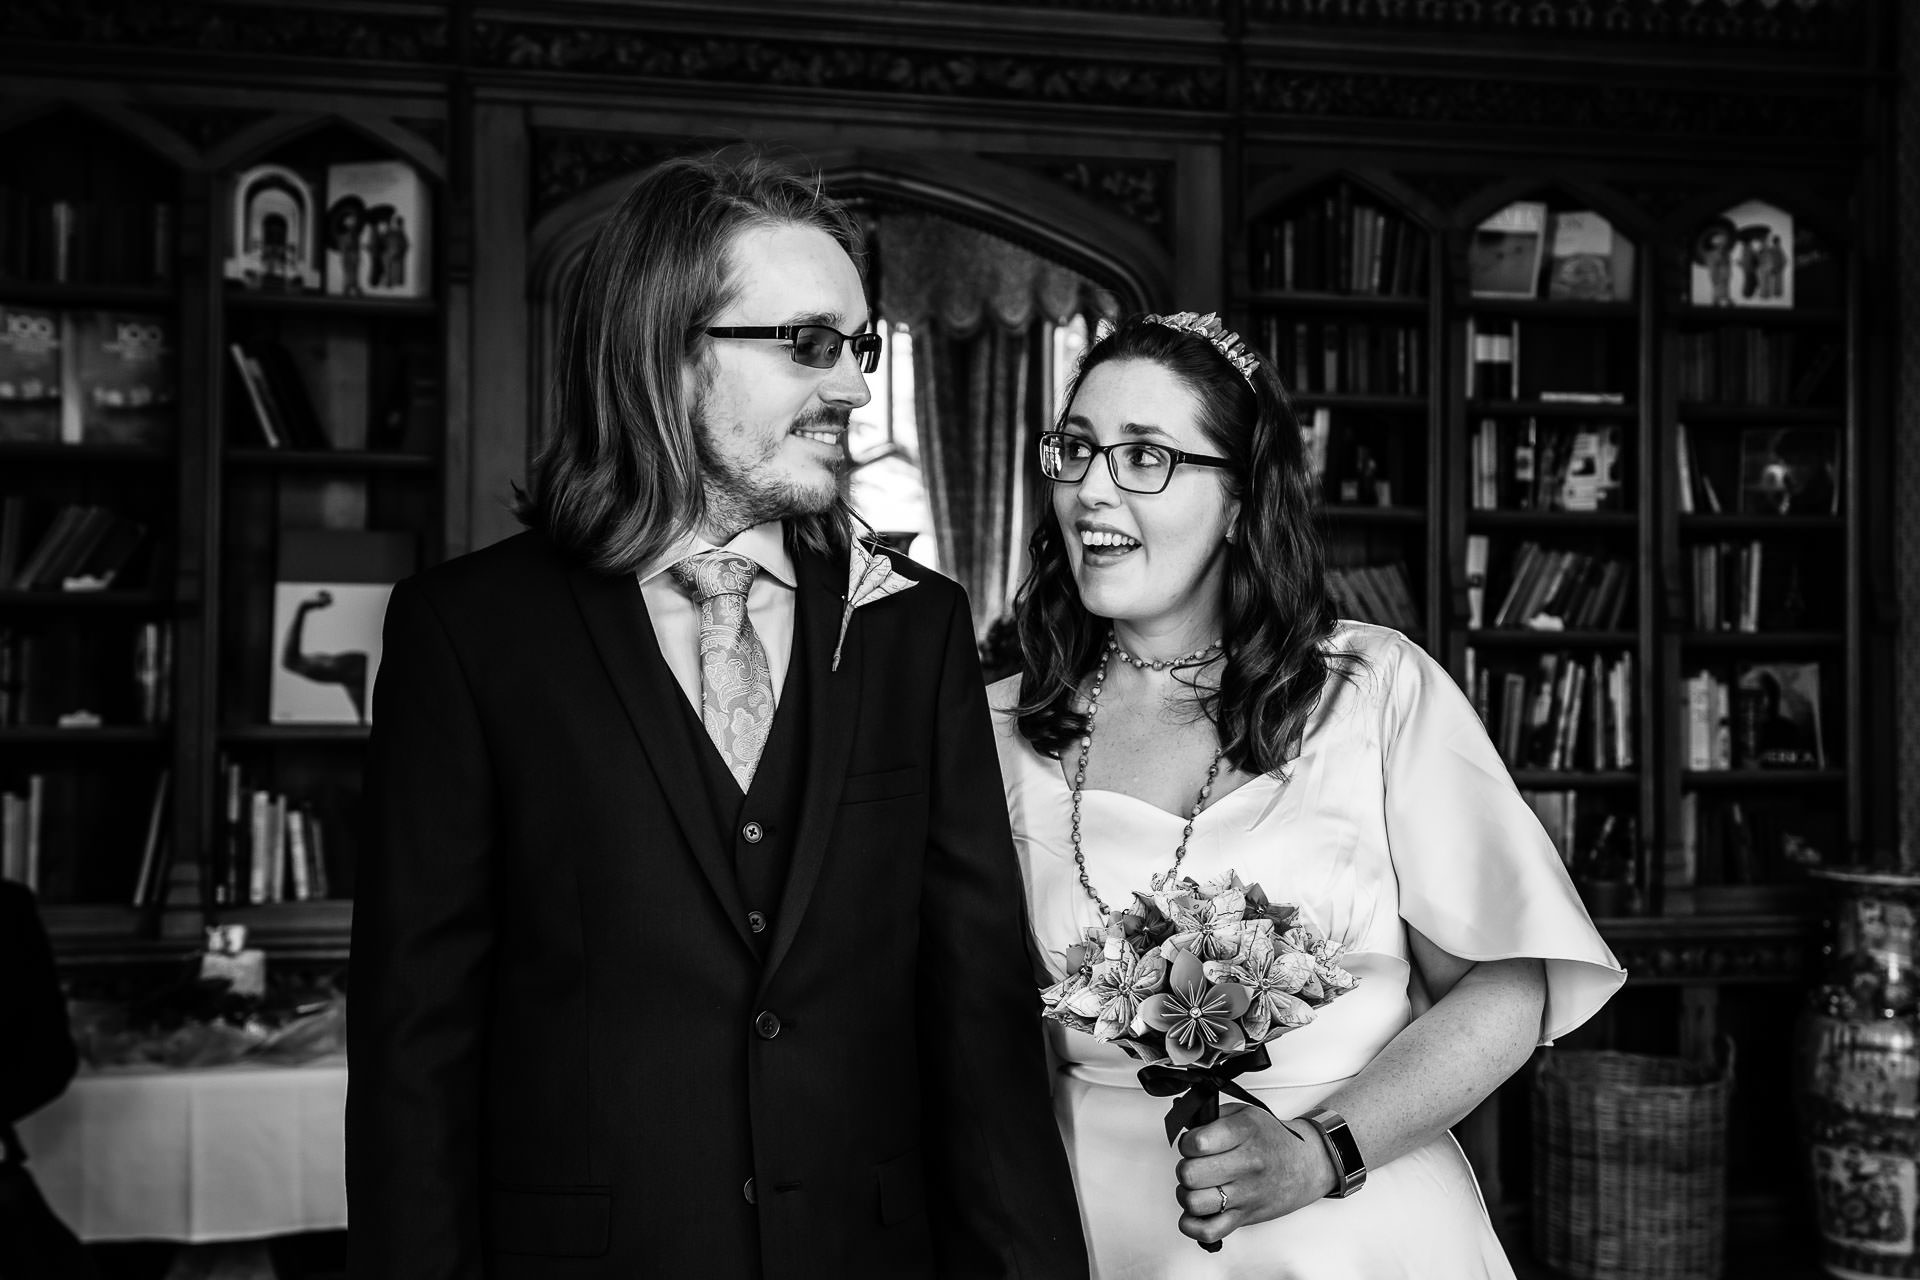 United Kingdom Elopement Couple Photo | The newlywed couple during their elopement ceremony